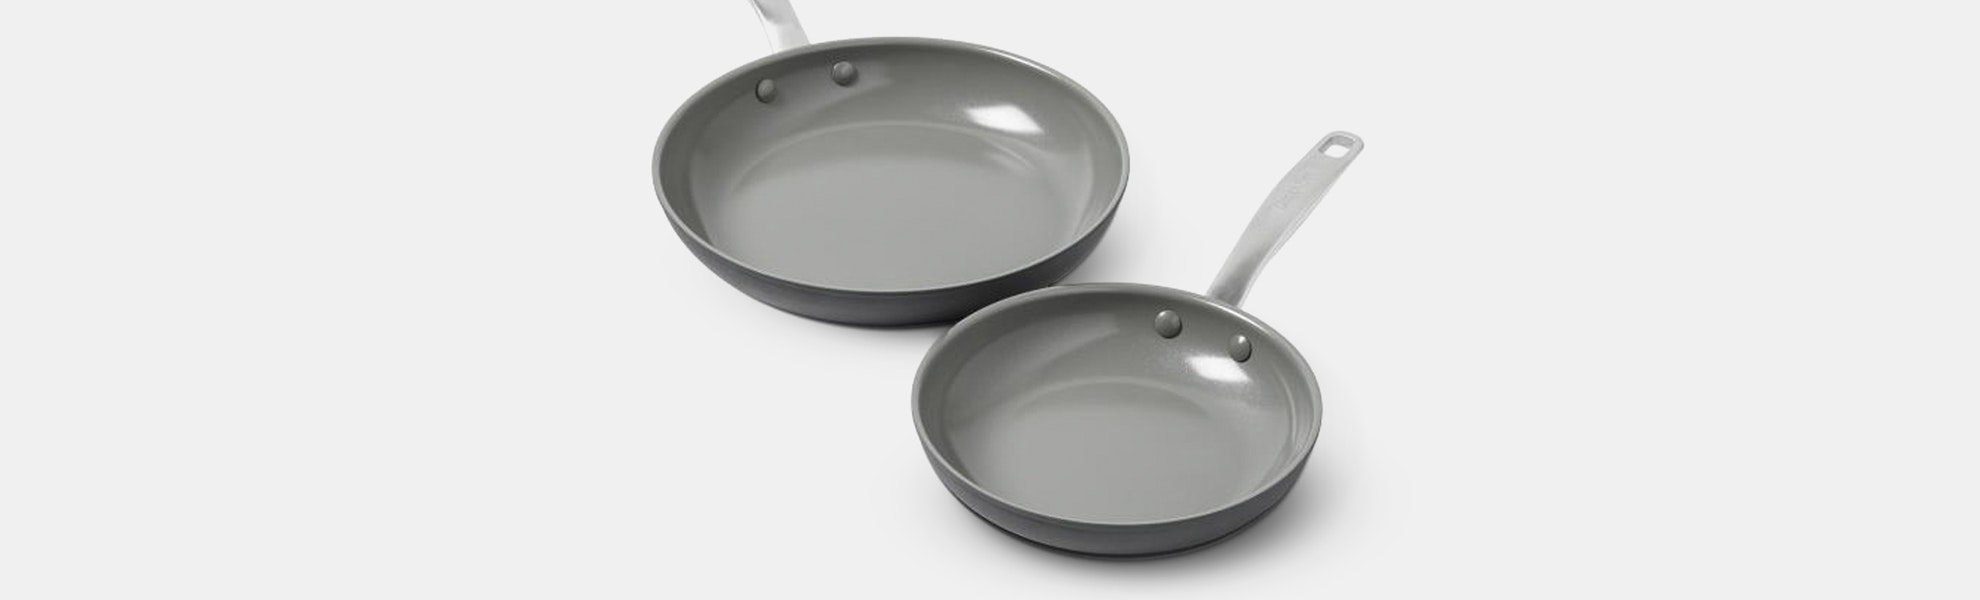 GreenPan Chatham 8 & 10-Inch Fry Pan Set